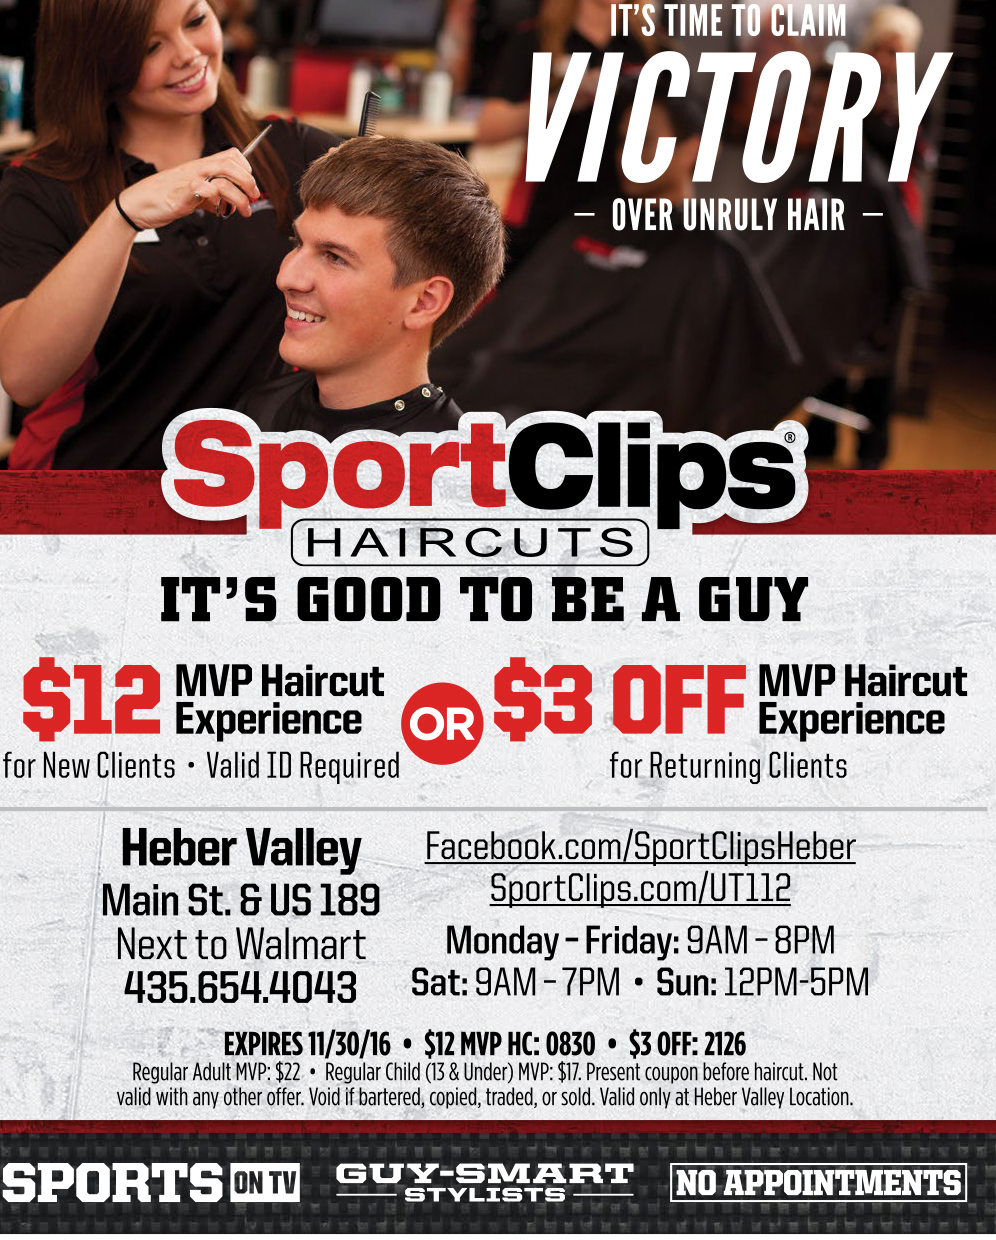 Sportclips Haircuts Heber Valley Guide